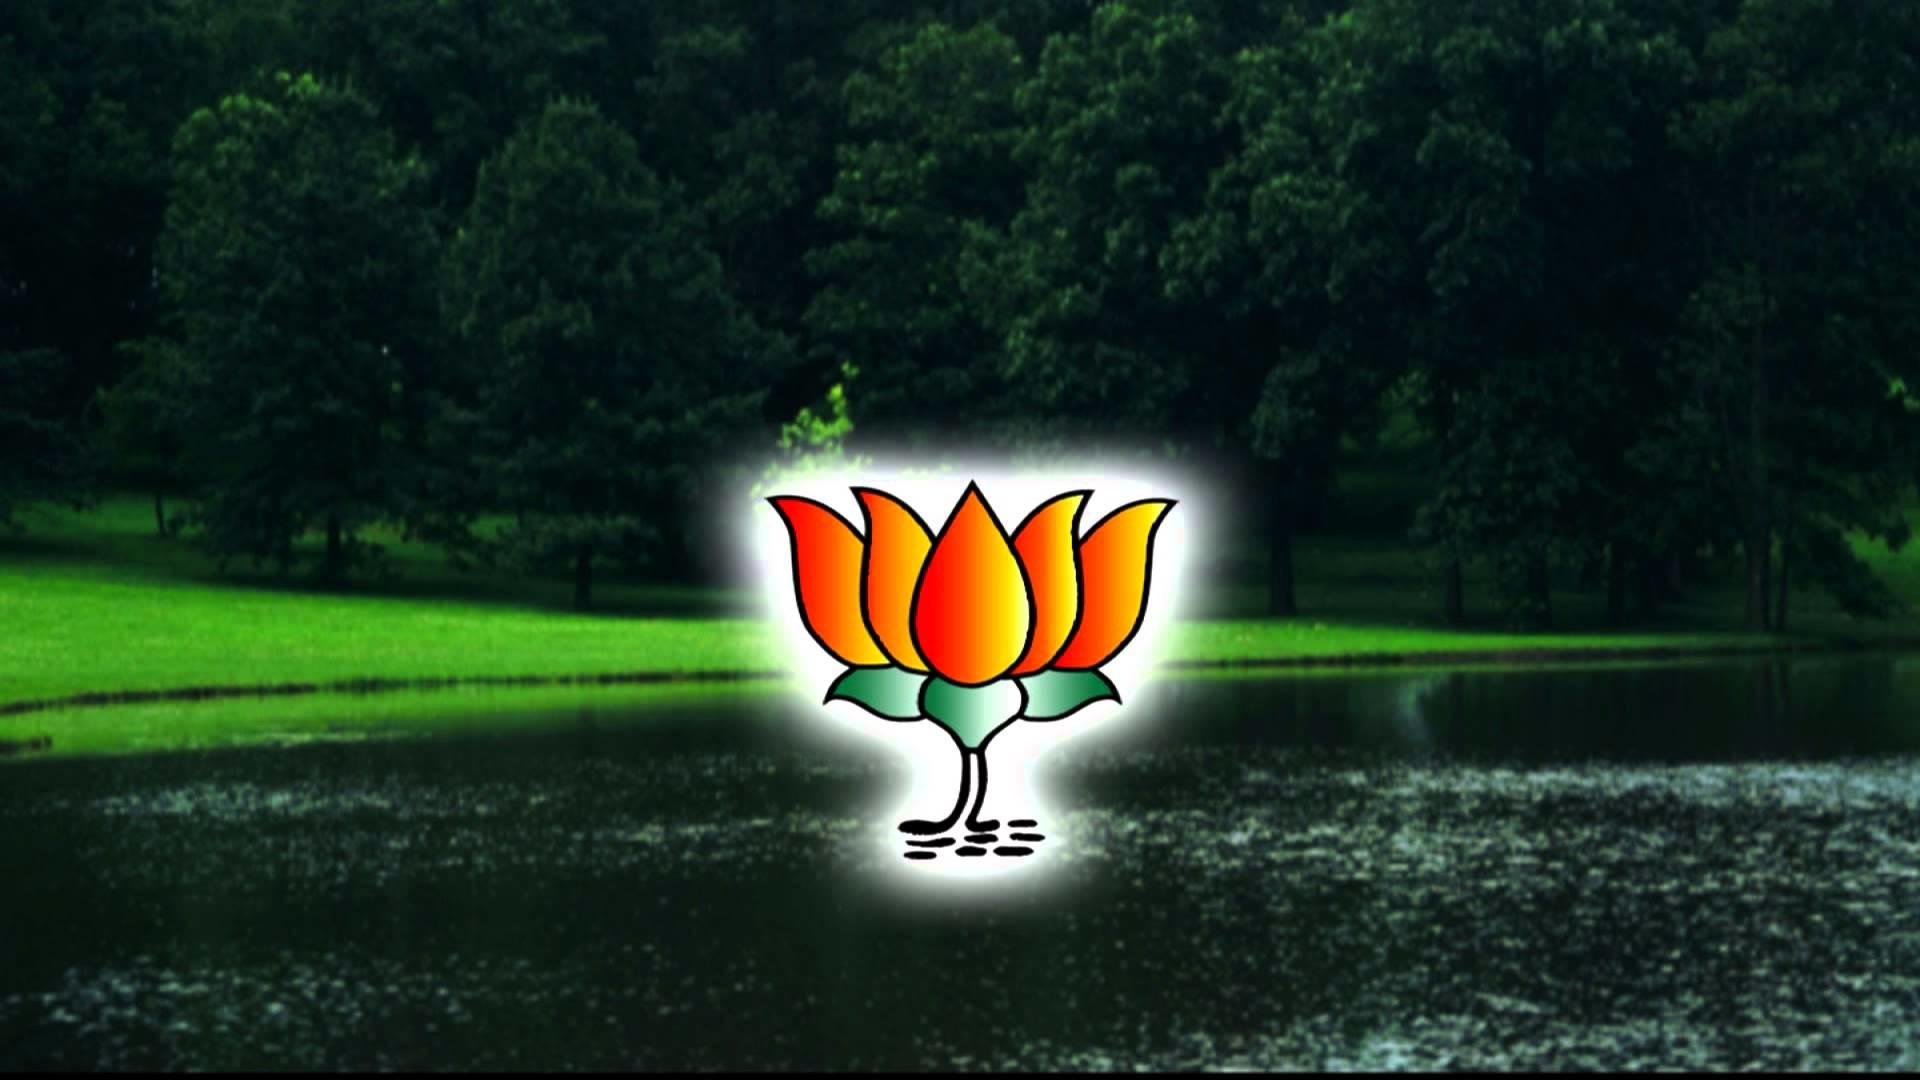 Source Bjp Wallpaper Hd Popular Image 2018